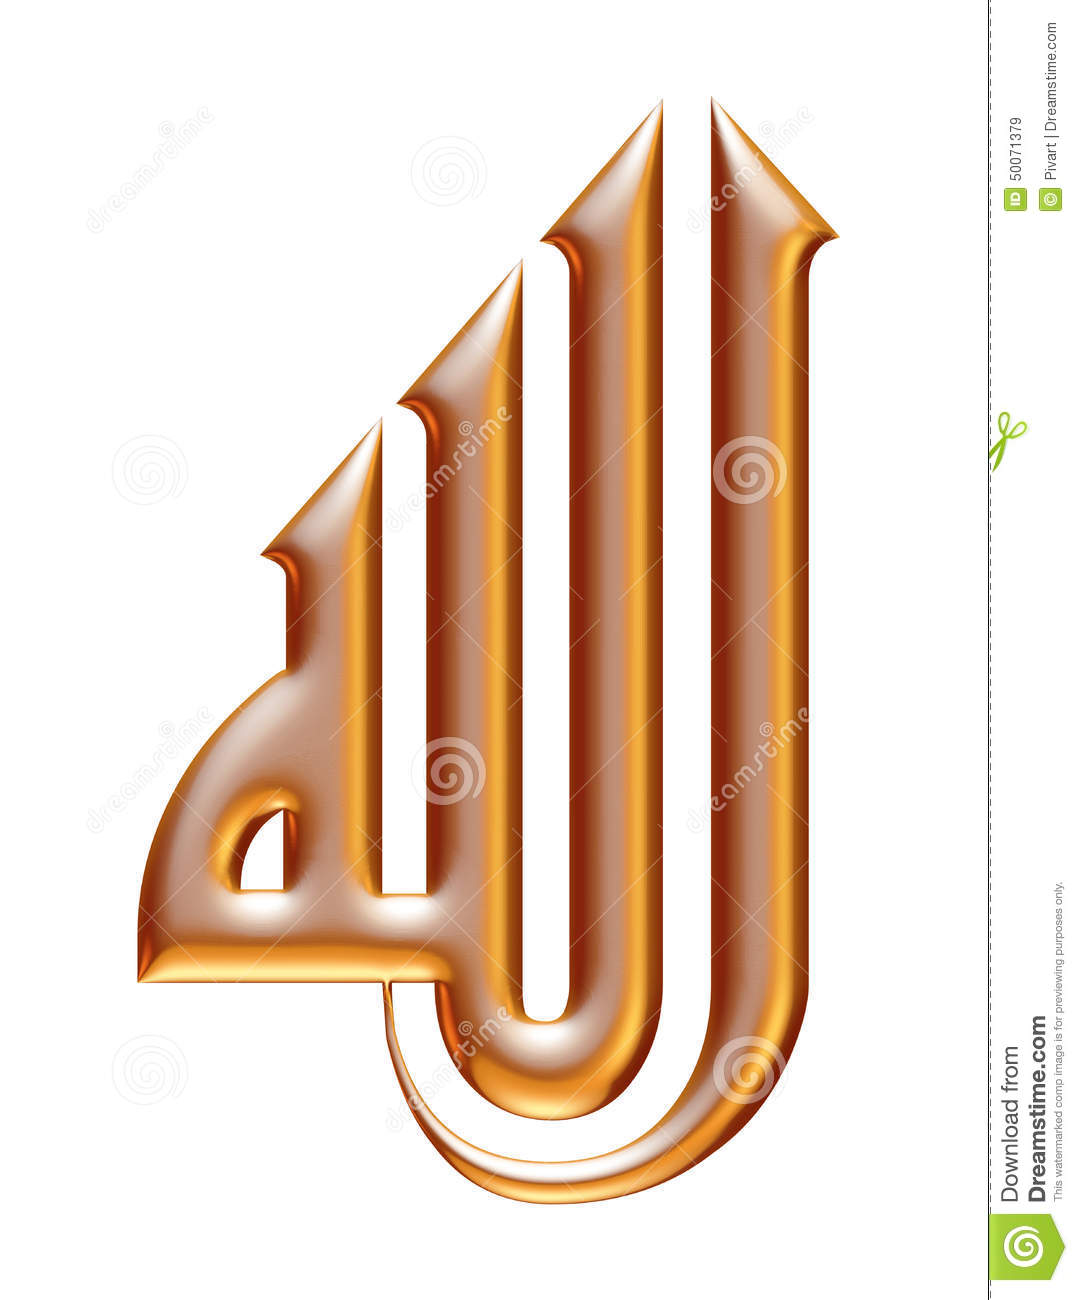 Bismillah In The Name Of God Arabic Golden Text On Isolated White